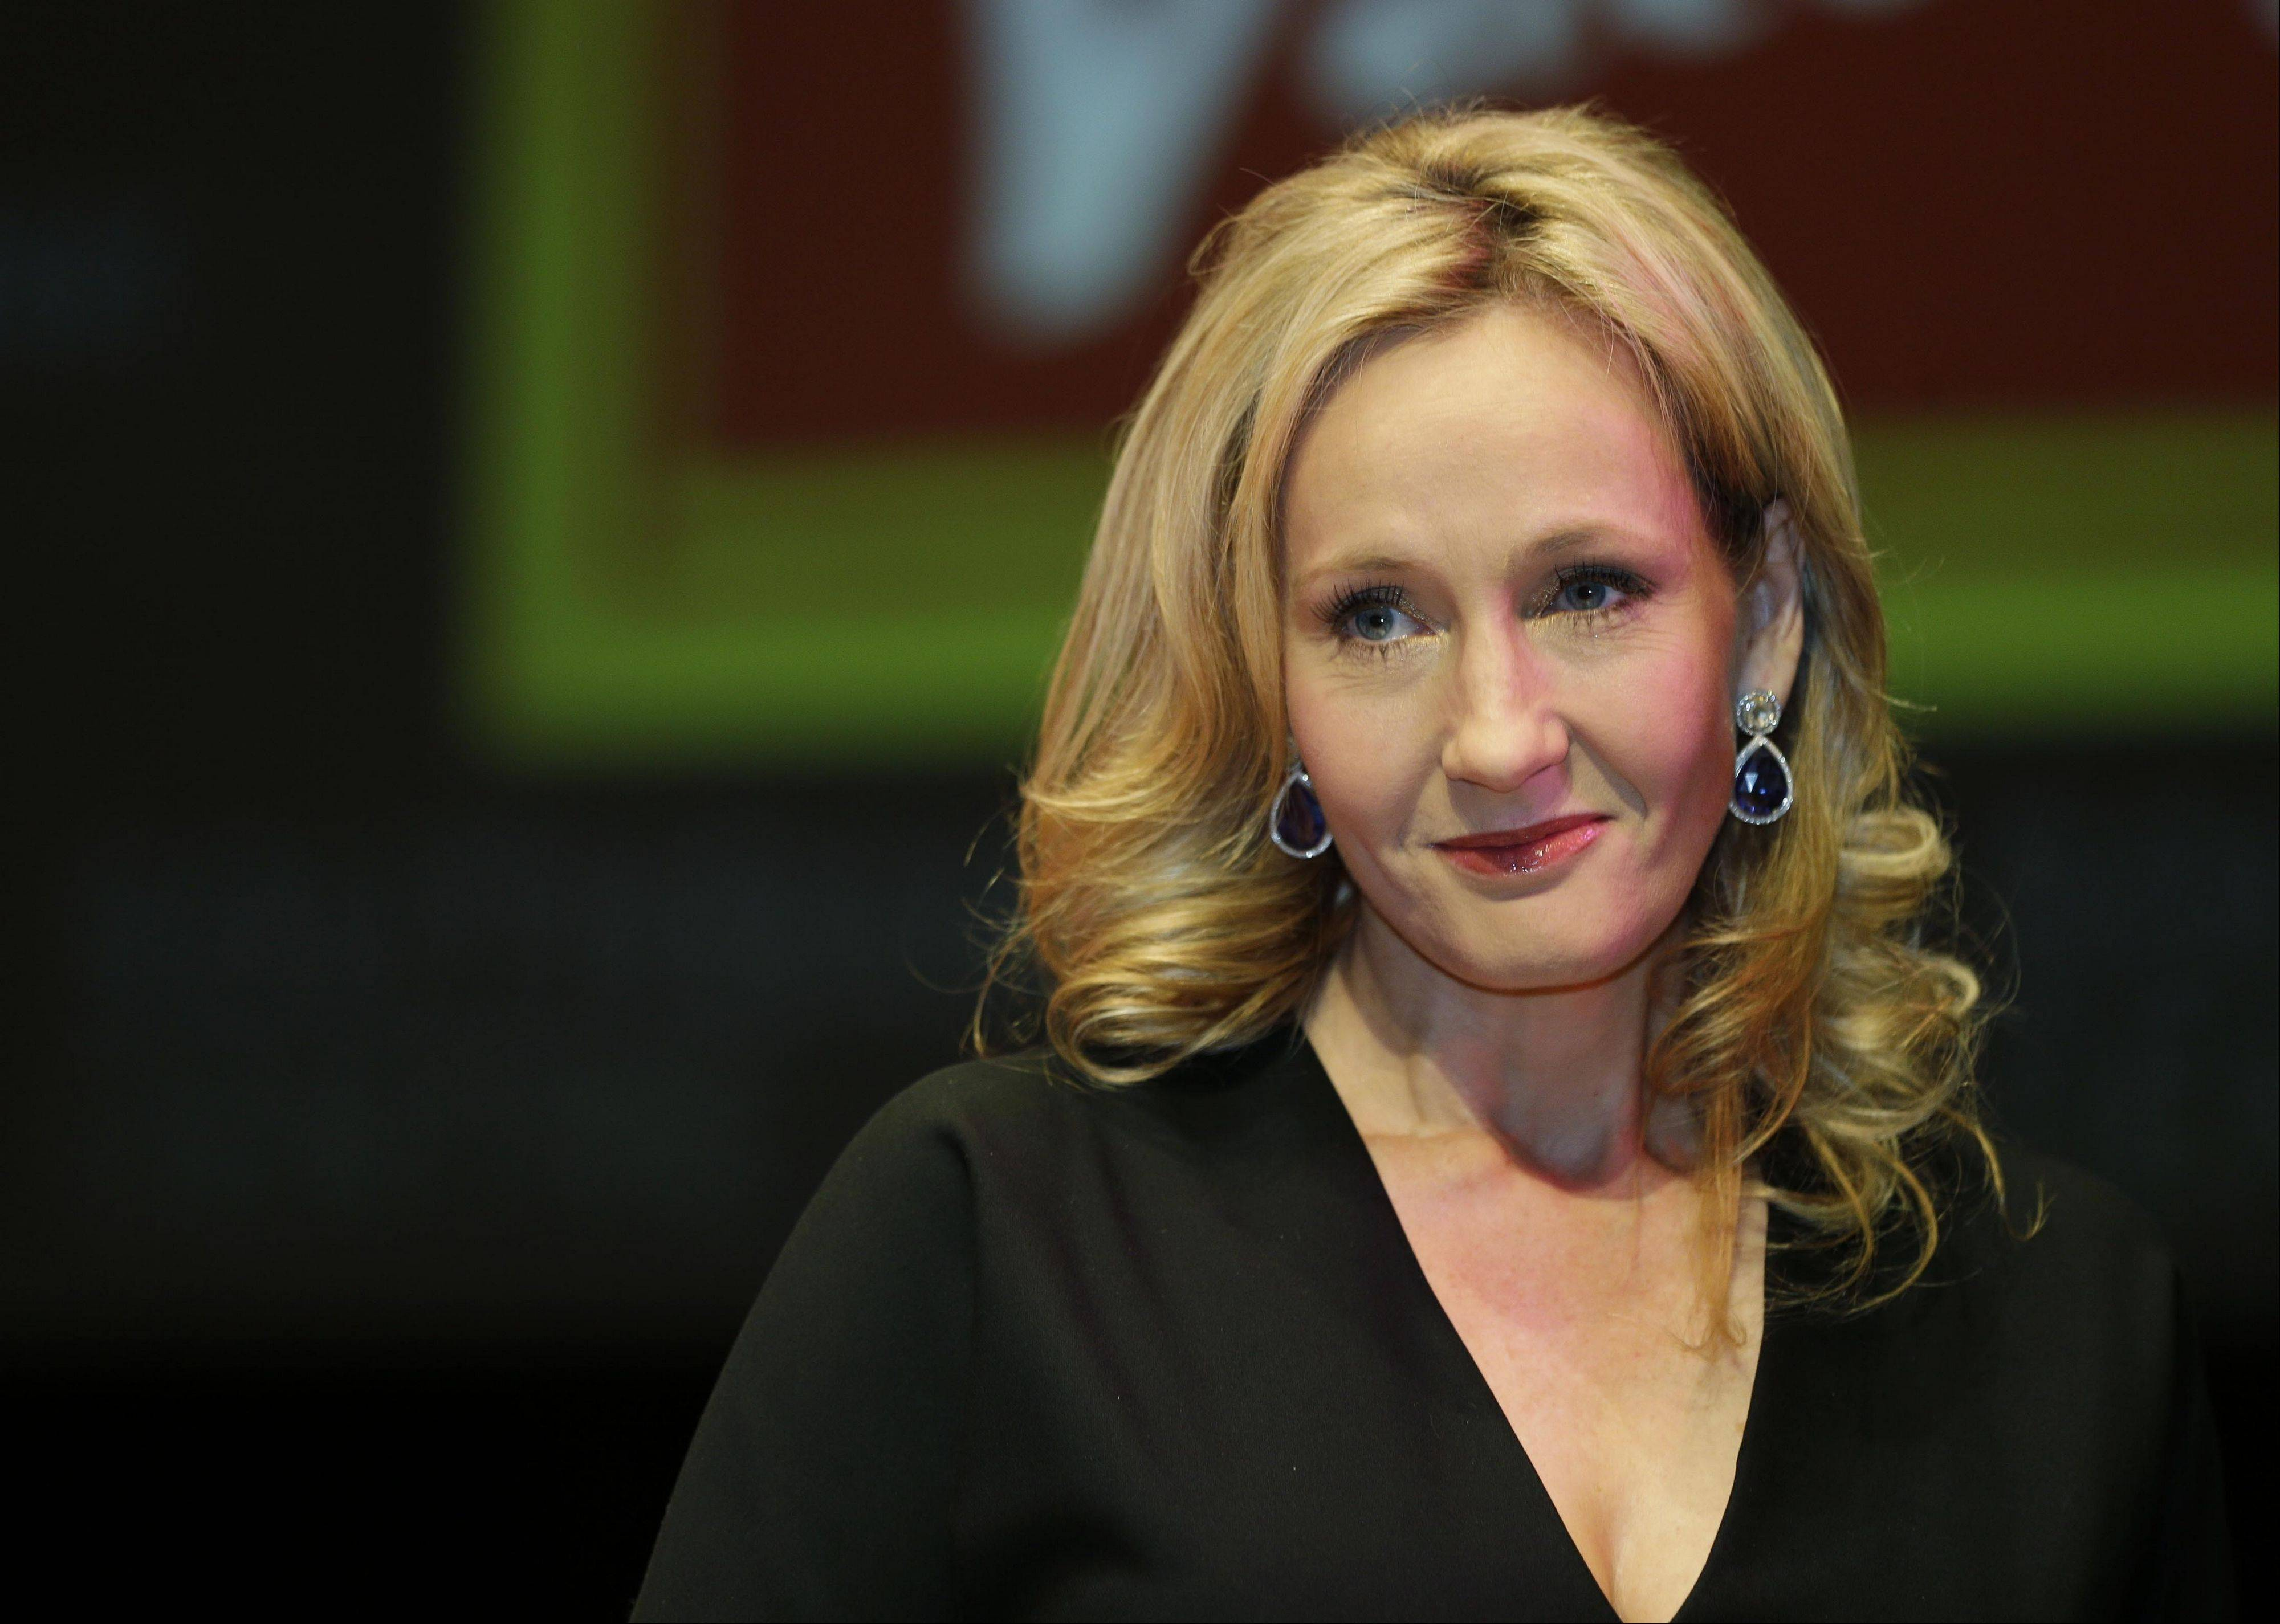 Harry Potter is coming to the stage. J.K. Rowling said on Friday that she is working on a play about the boy wizard�s life before he attended Hogwarts School of Witchcraft and Wizardry.